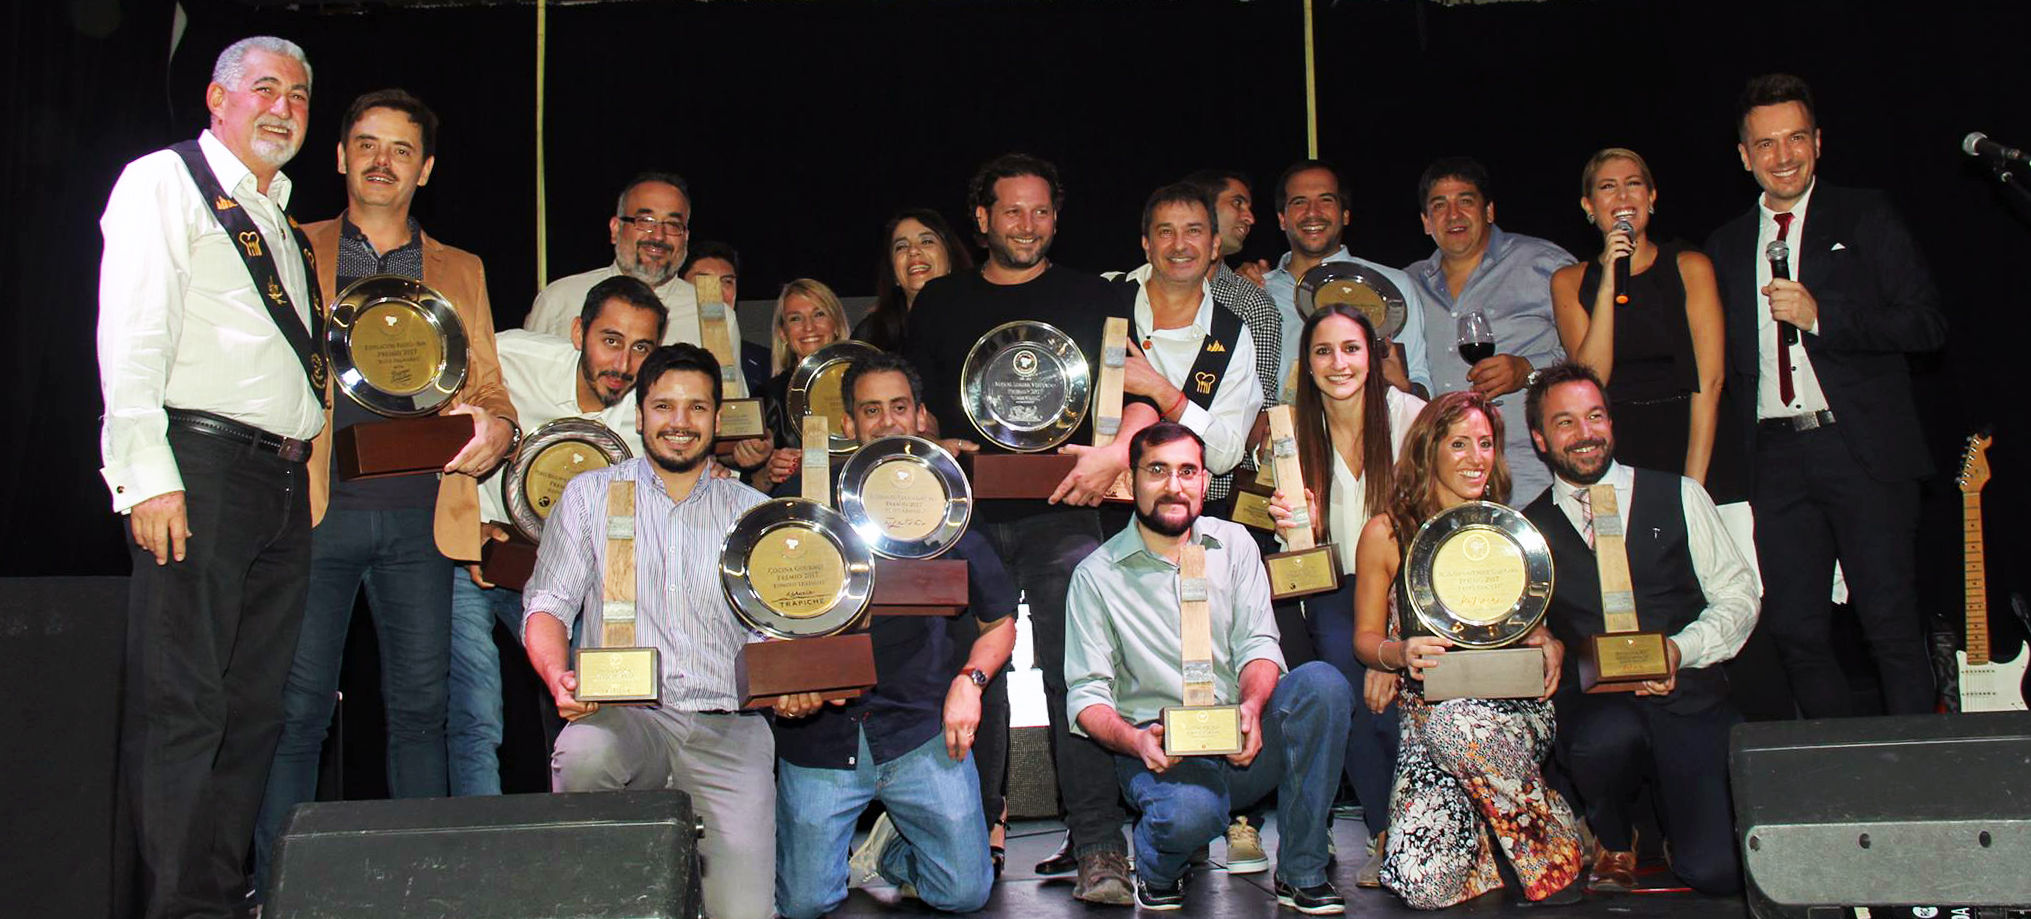 Integrantes club gourmet mendoza